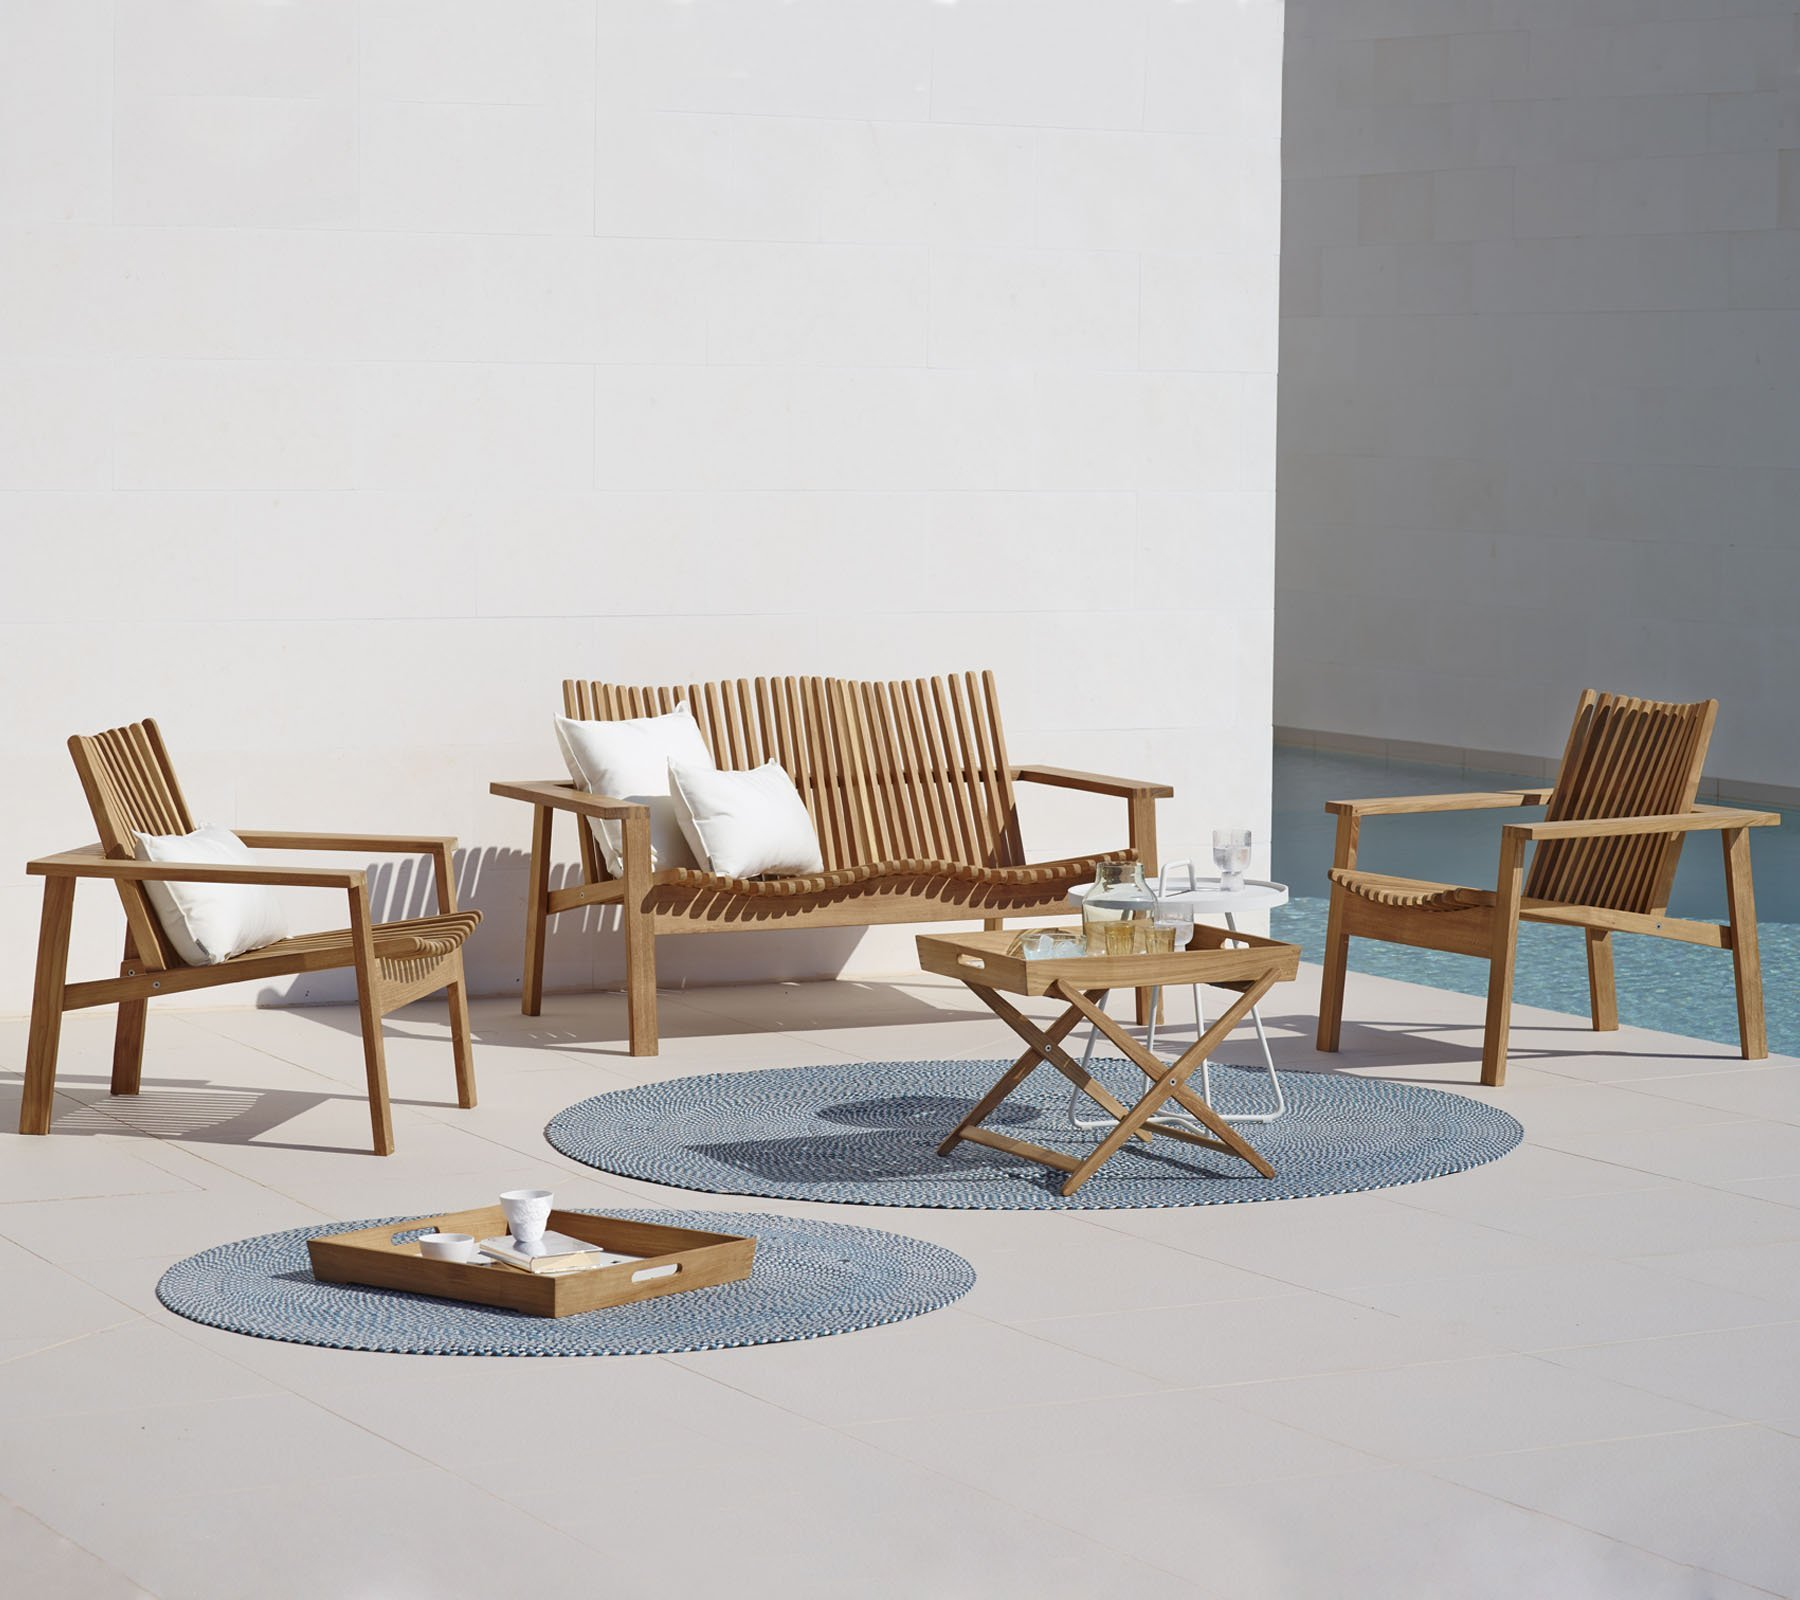 Amaze Lounge Chair from Cane-line, designed by Foersom & Hiort-Lorenzen MDD